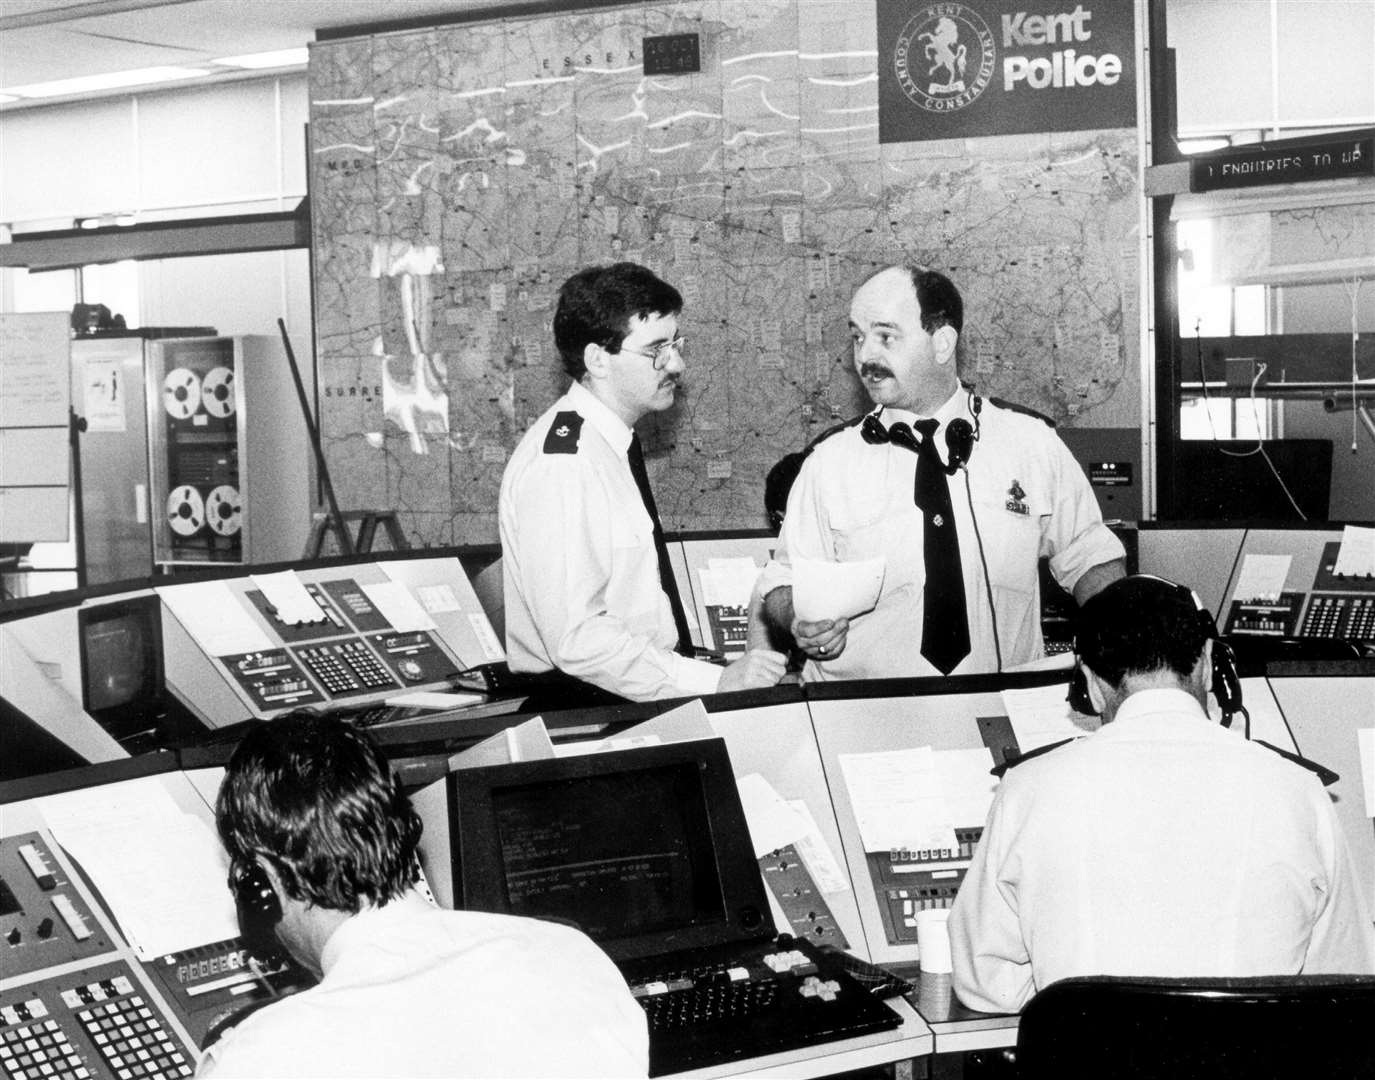 A control room in the Kent Police headquarters in 1987